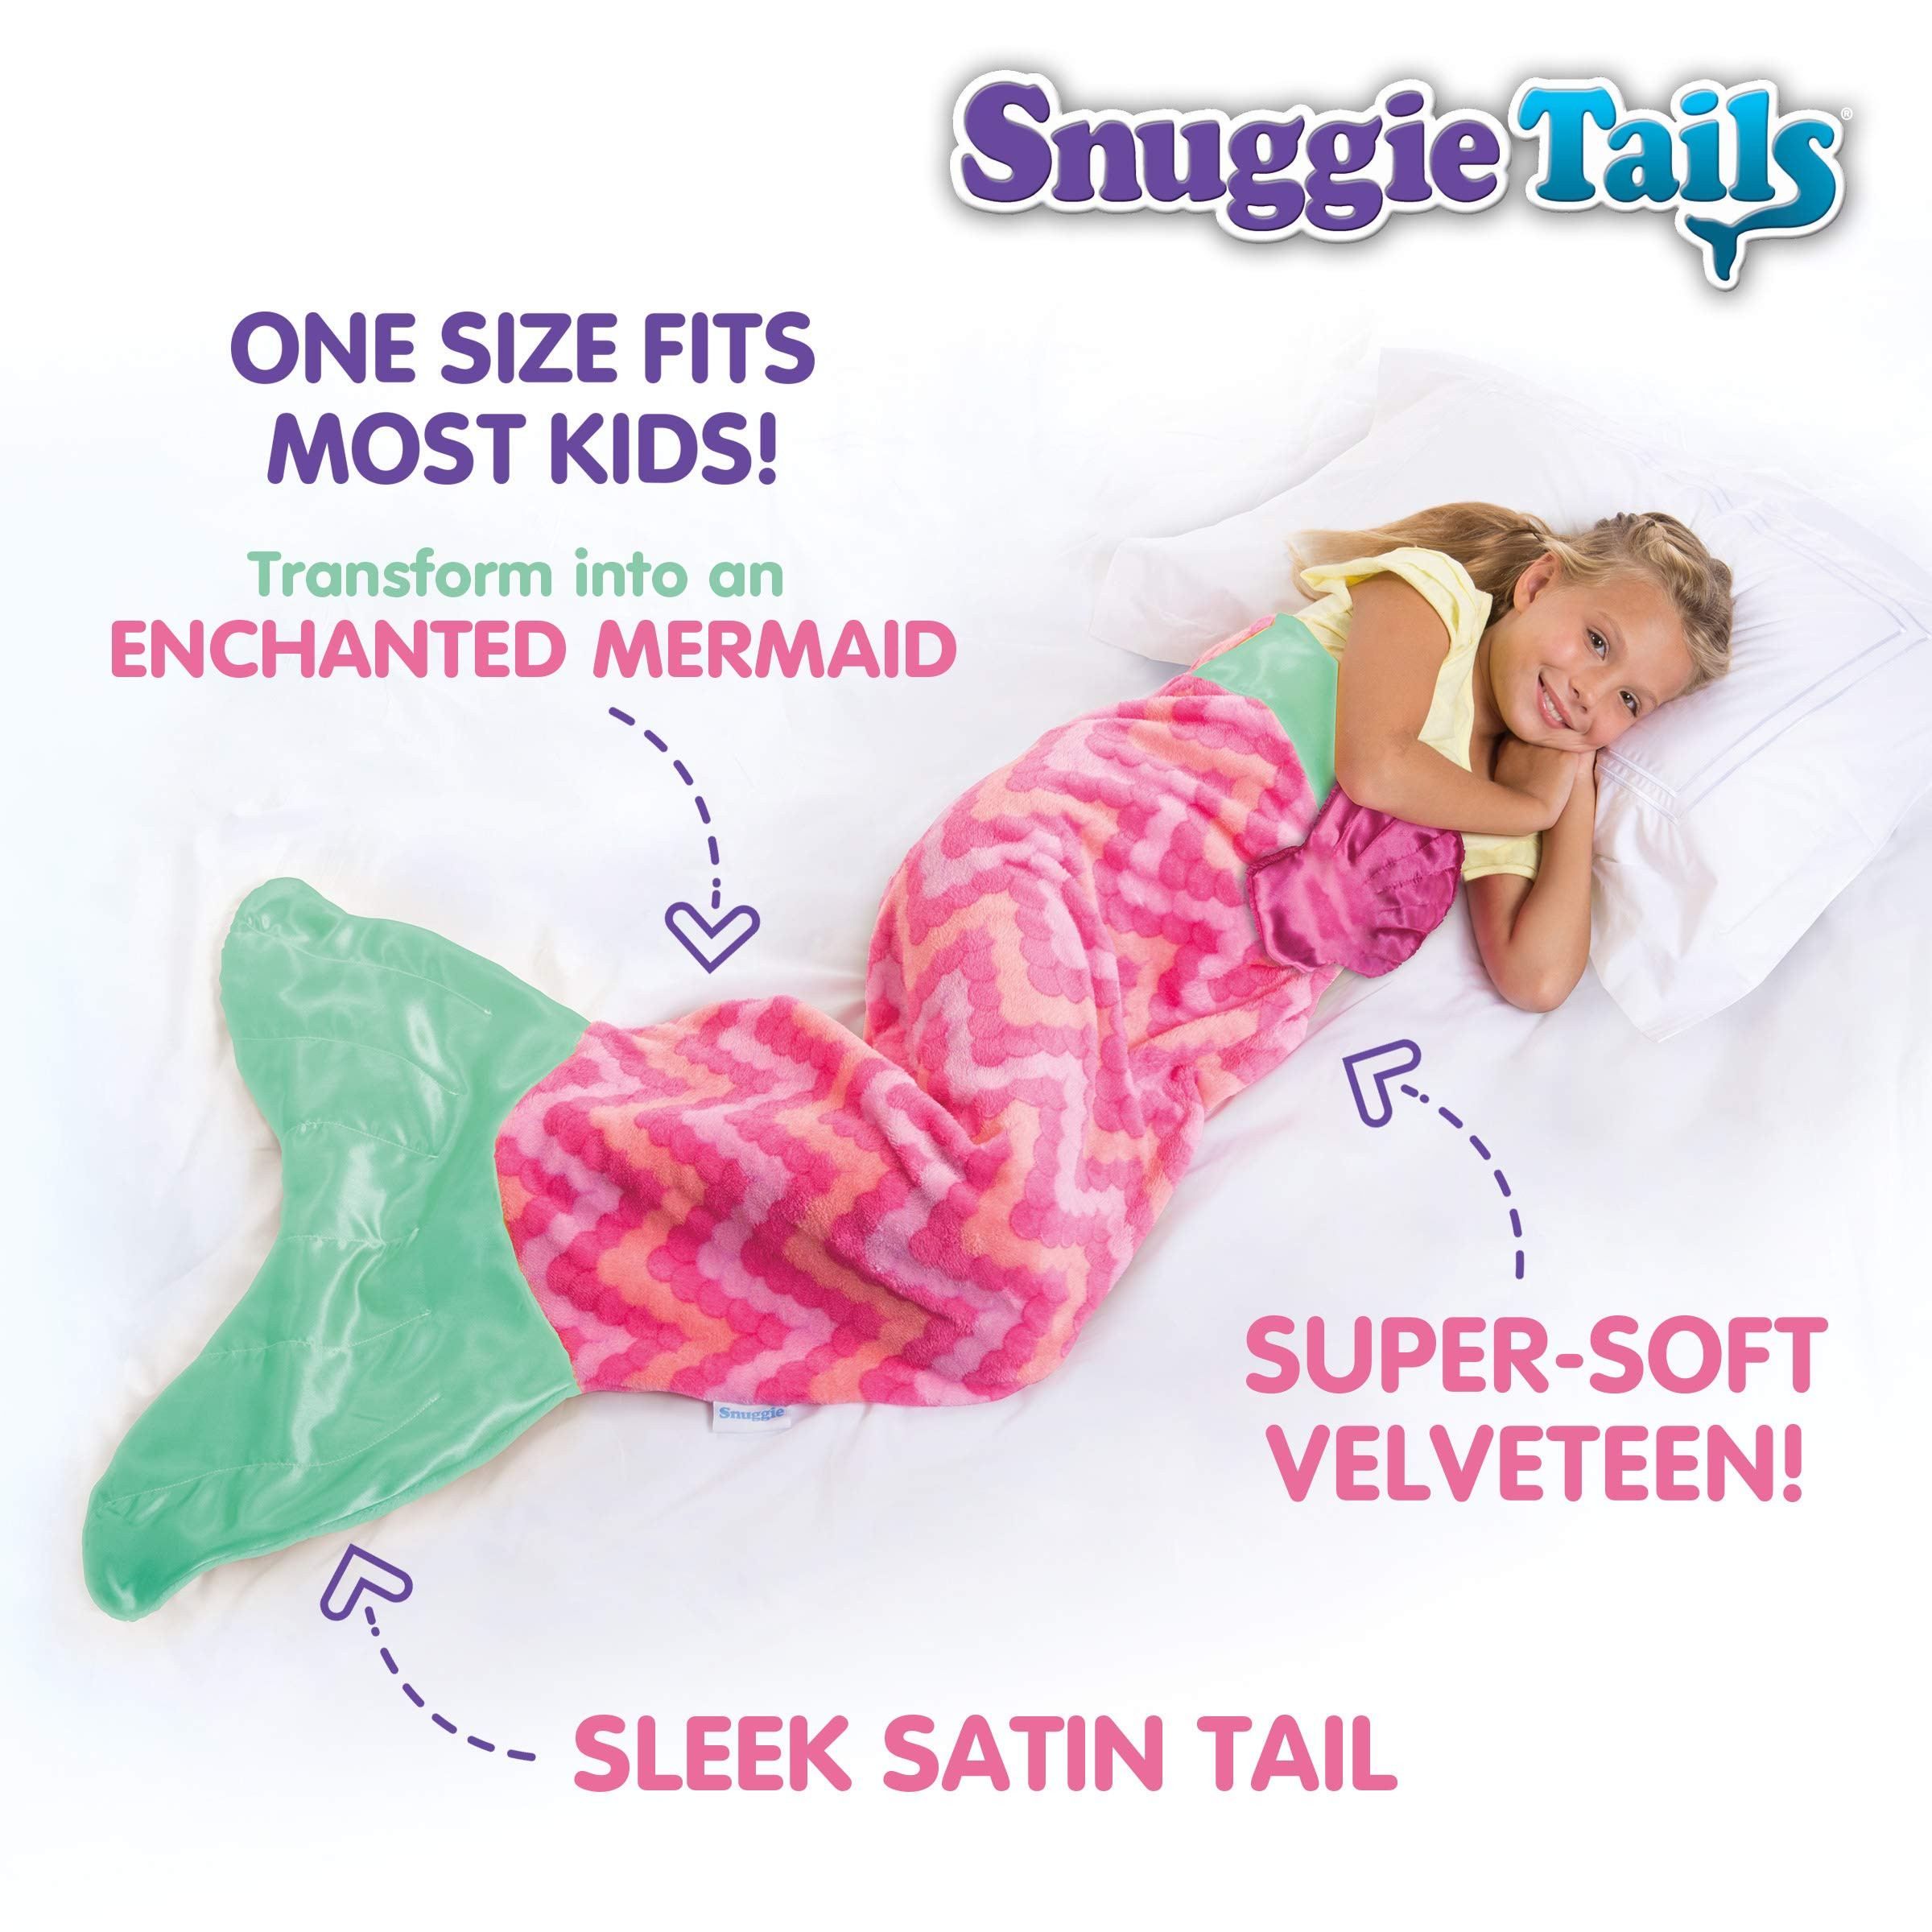 Snuggie Tails Allstar Innovations Mermaid Blanket for Kids (Pink), As Seen on TV by Snuggie Tails (Image #3)